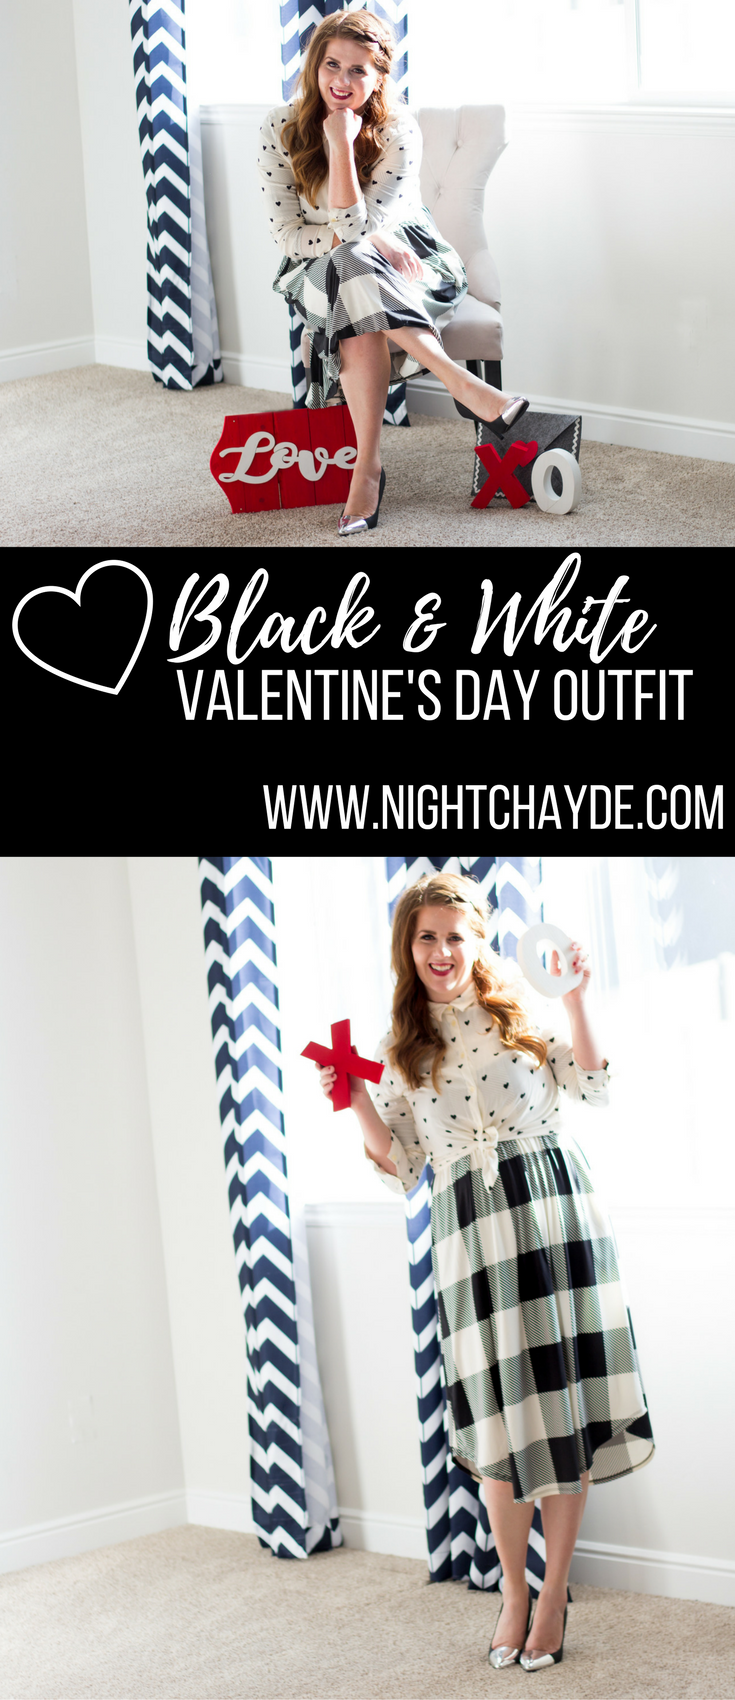 Black and White Valentines Day Outfit